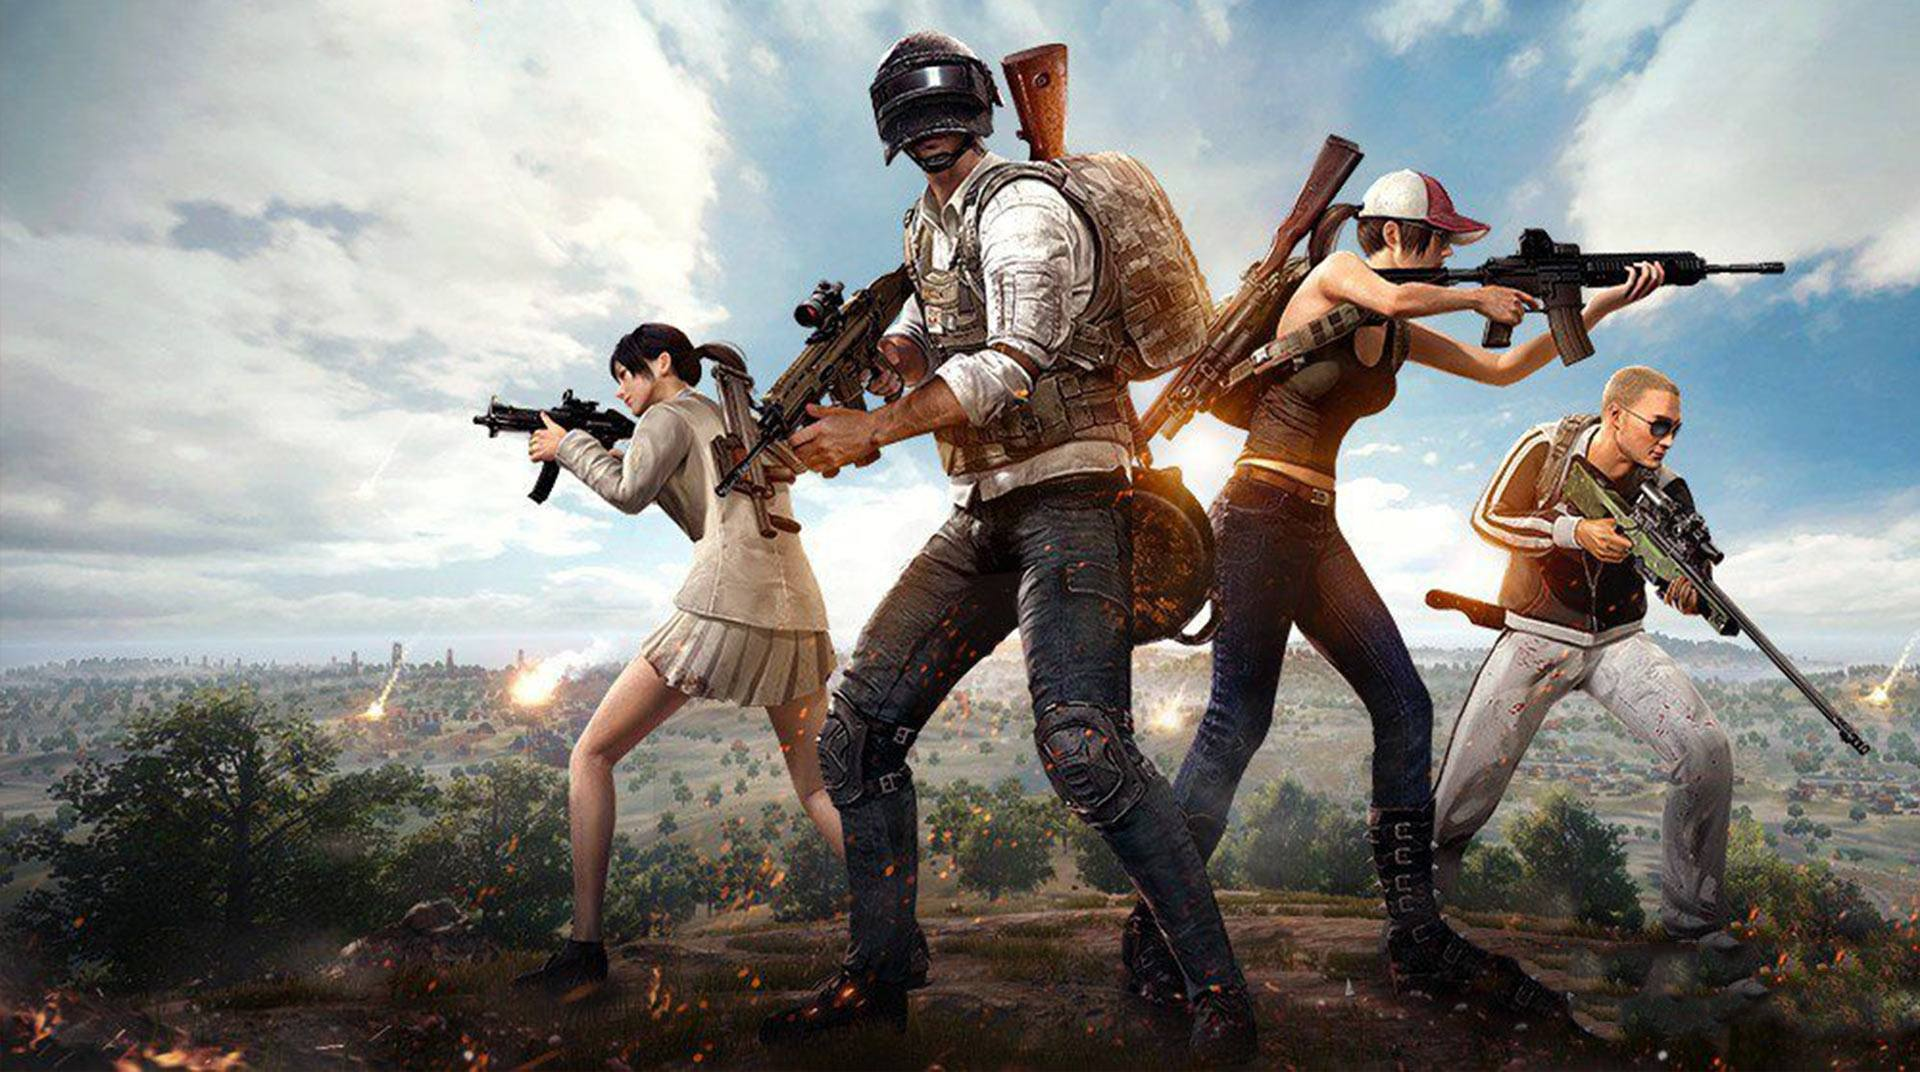 Have a great time while playing PUBG game with the help of cheats